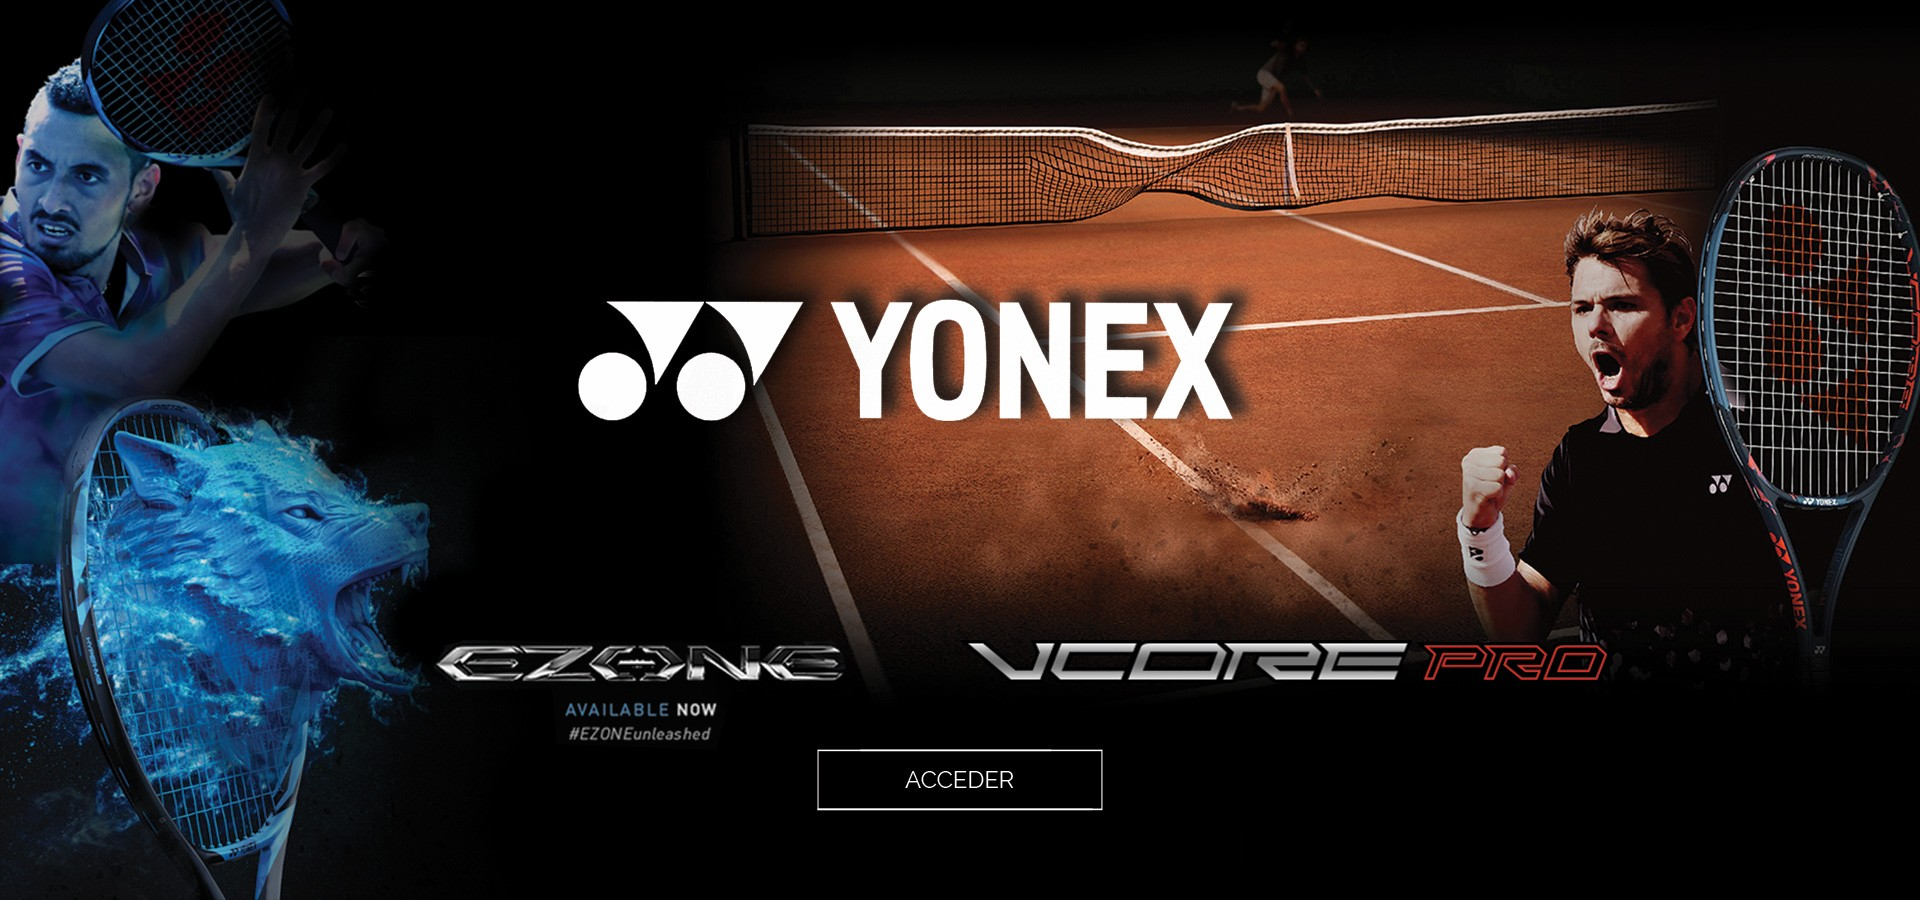 Nouvelle collection Yonex zone et Vcore